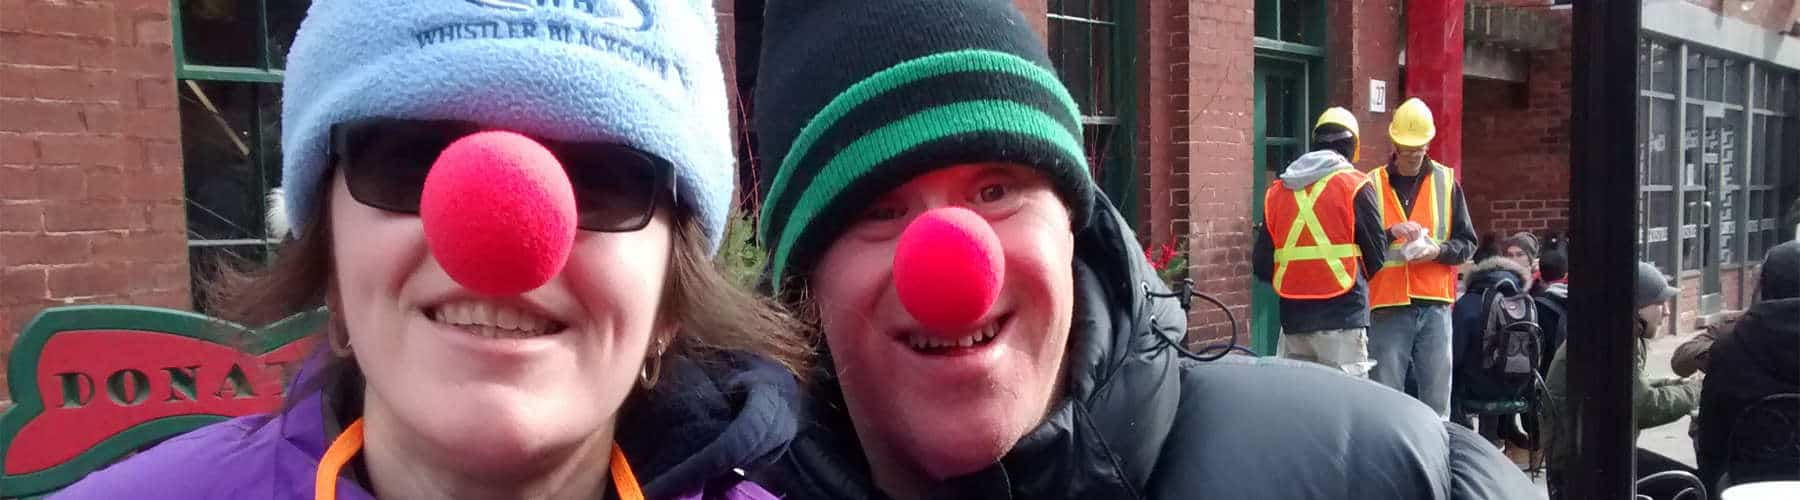 Addus Participants Wearing Red Clown Noses Feature Slider Image Home Page